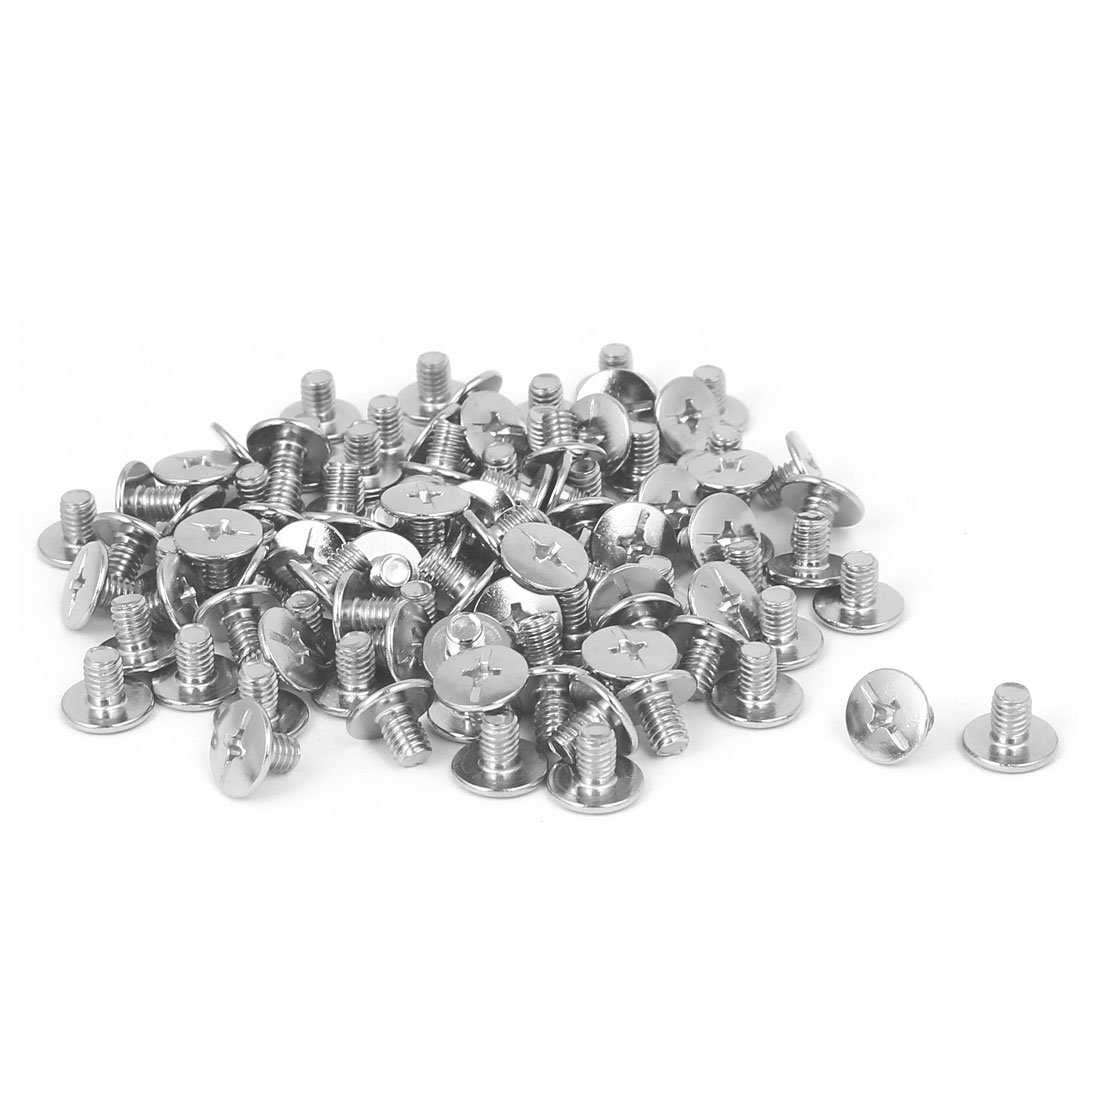 Book Photo Album Scrapbook Metal Phillips Head Binding Screw Post M4x5mm 100pcs